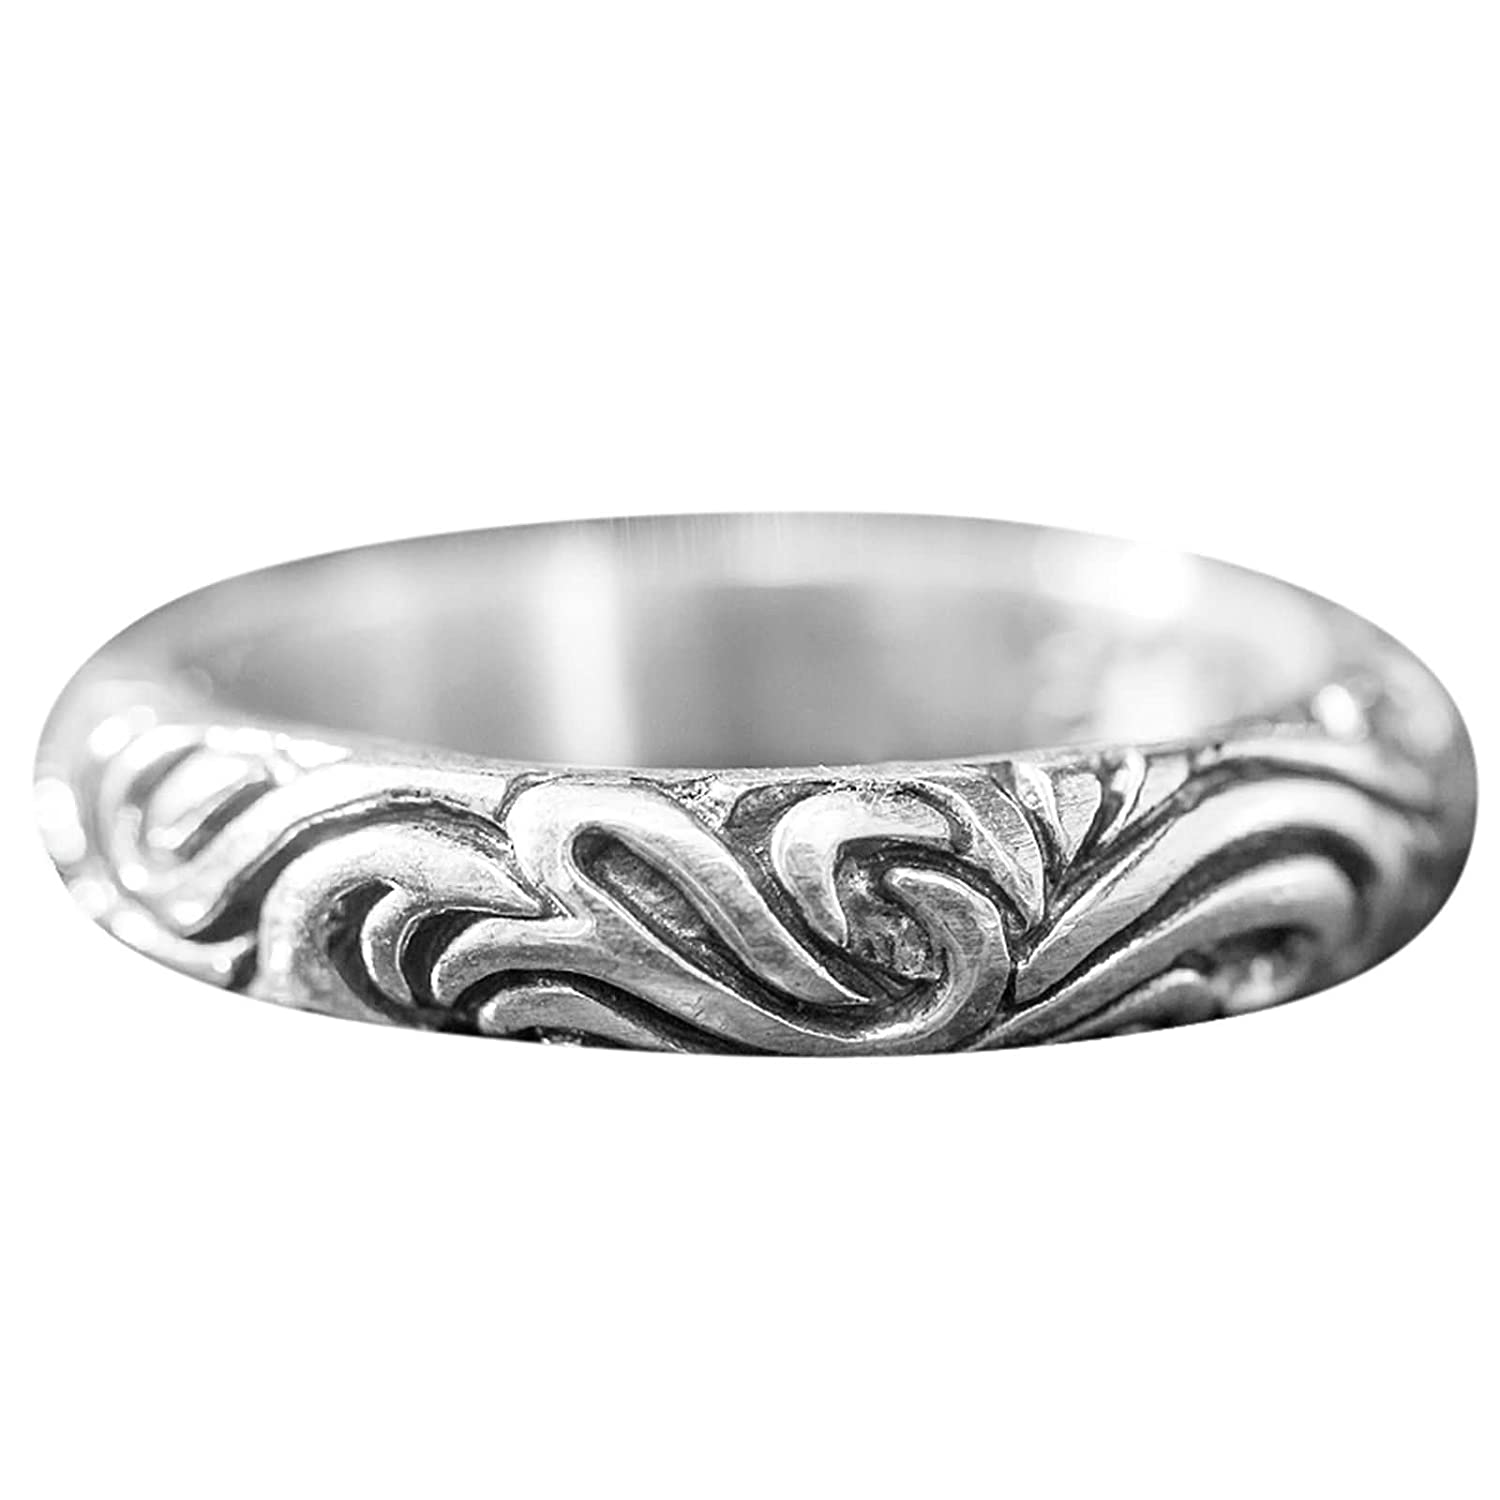 Bishilin Silver Plated Rings for Men Round Totem Friendship Rings Silver Size 11.5